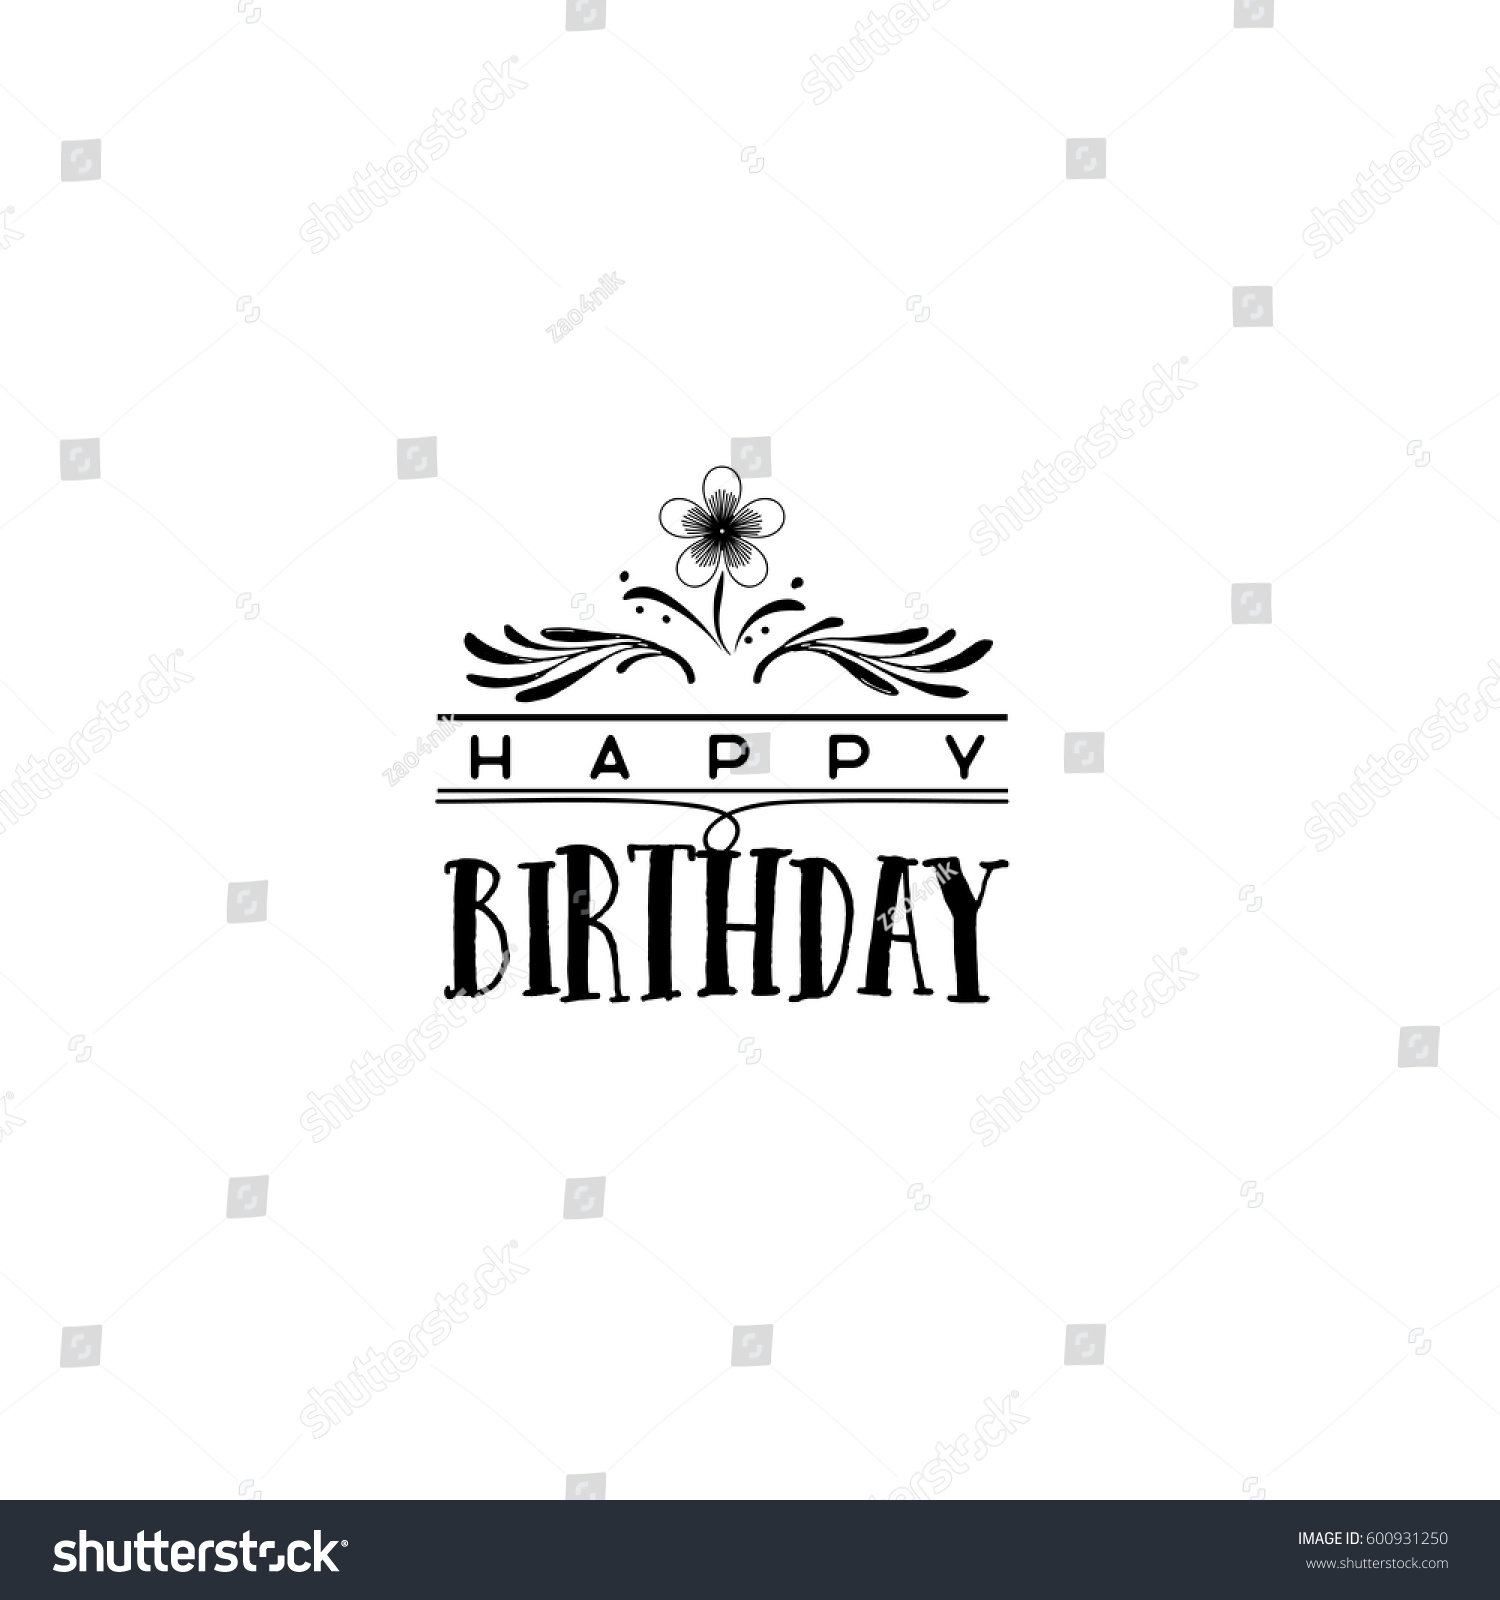 Happy birthday sign in elegant black script type with ornament - Badge As Part Of The Design Happy Birthday Sticker Stamp Logo For